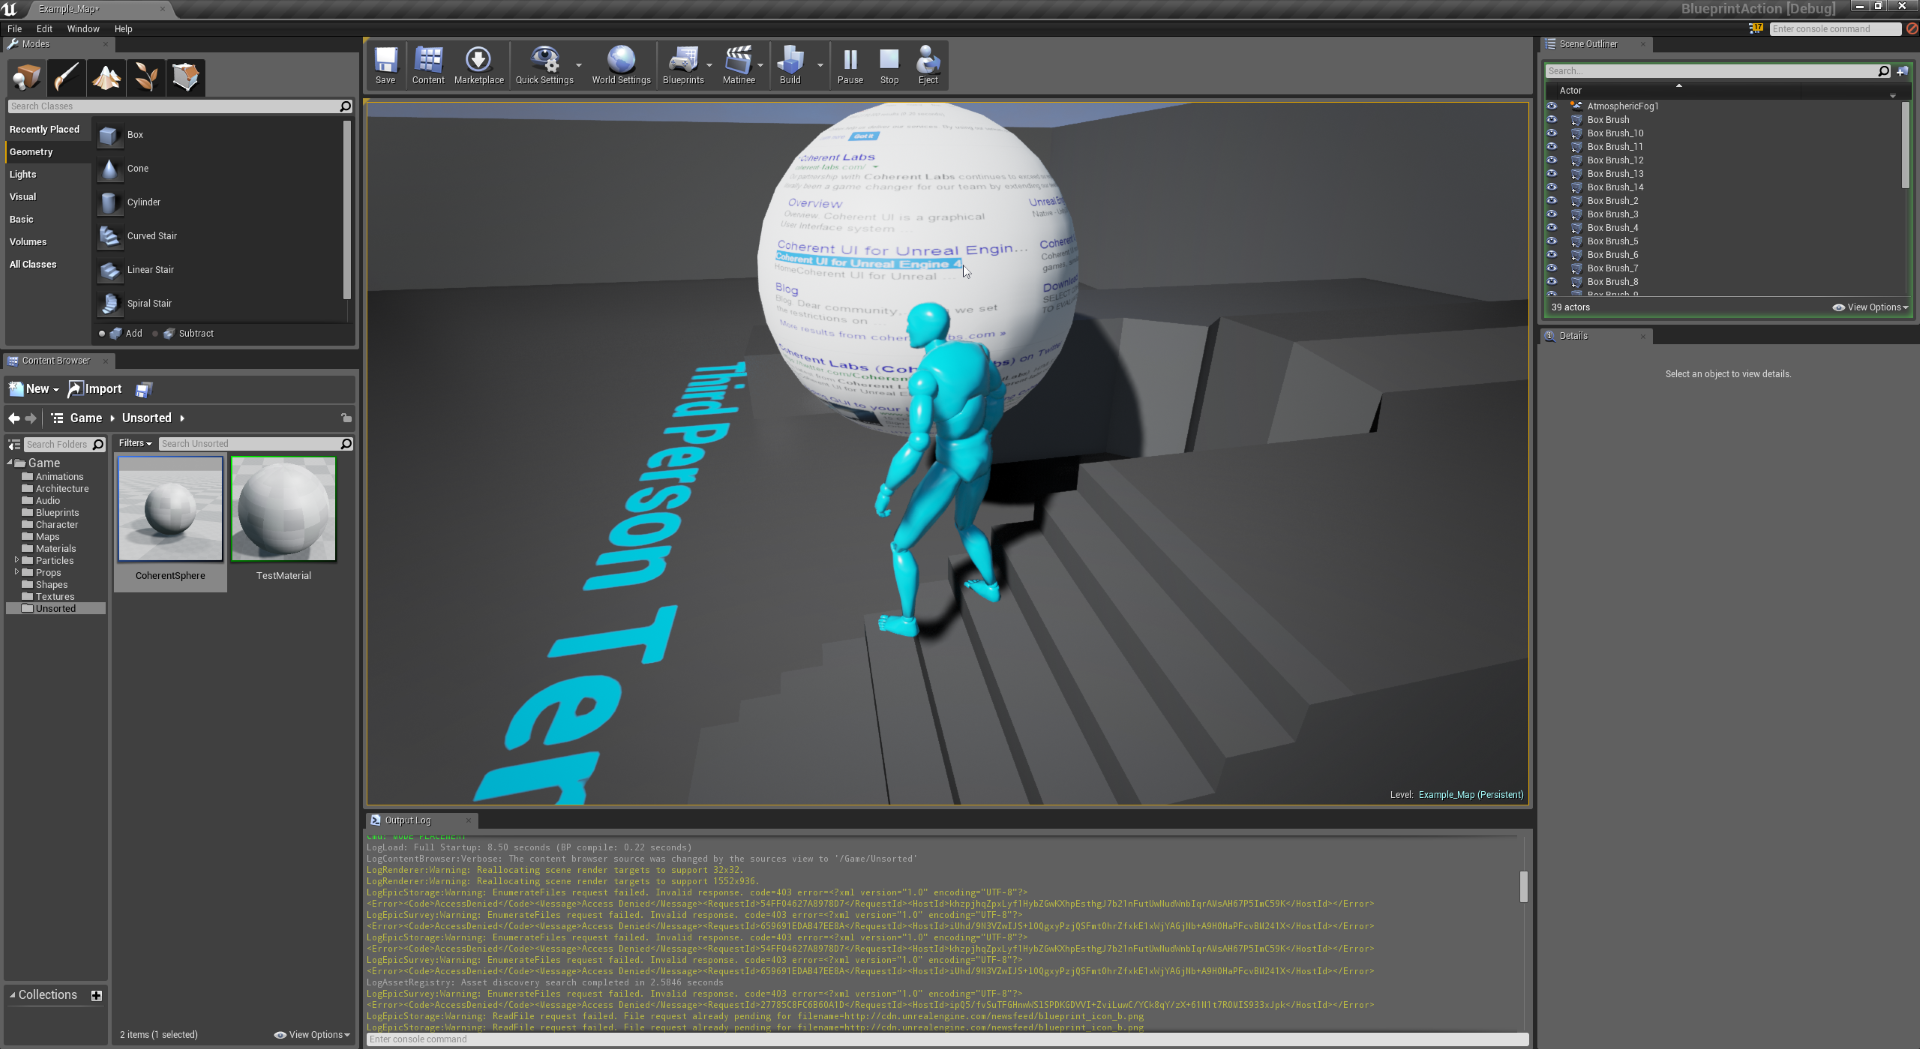 Presenting the unreal engine 4 blueprints support focused coherent ui view in the game malvernweather Gallery